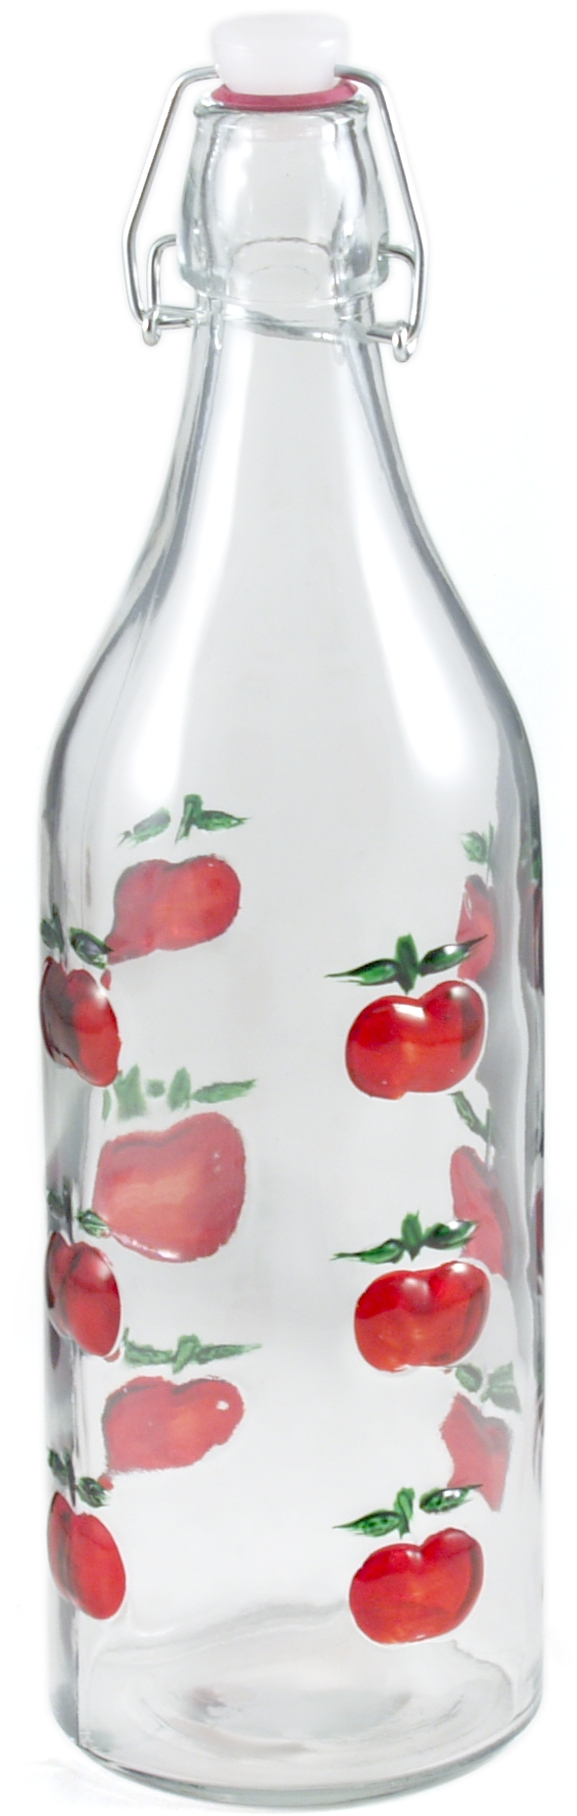 Glass Apple Beverage Bottle, 3.5 Inch